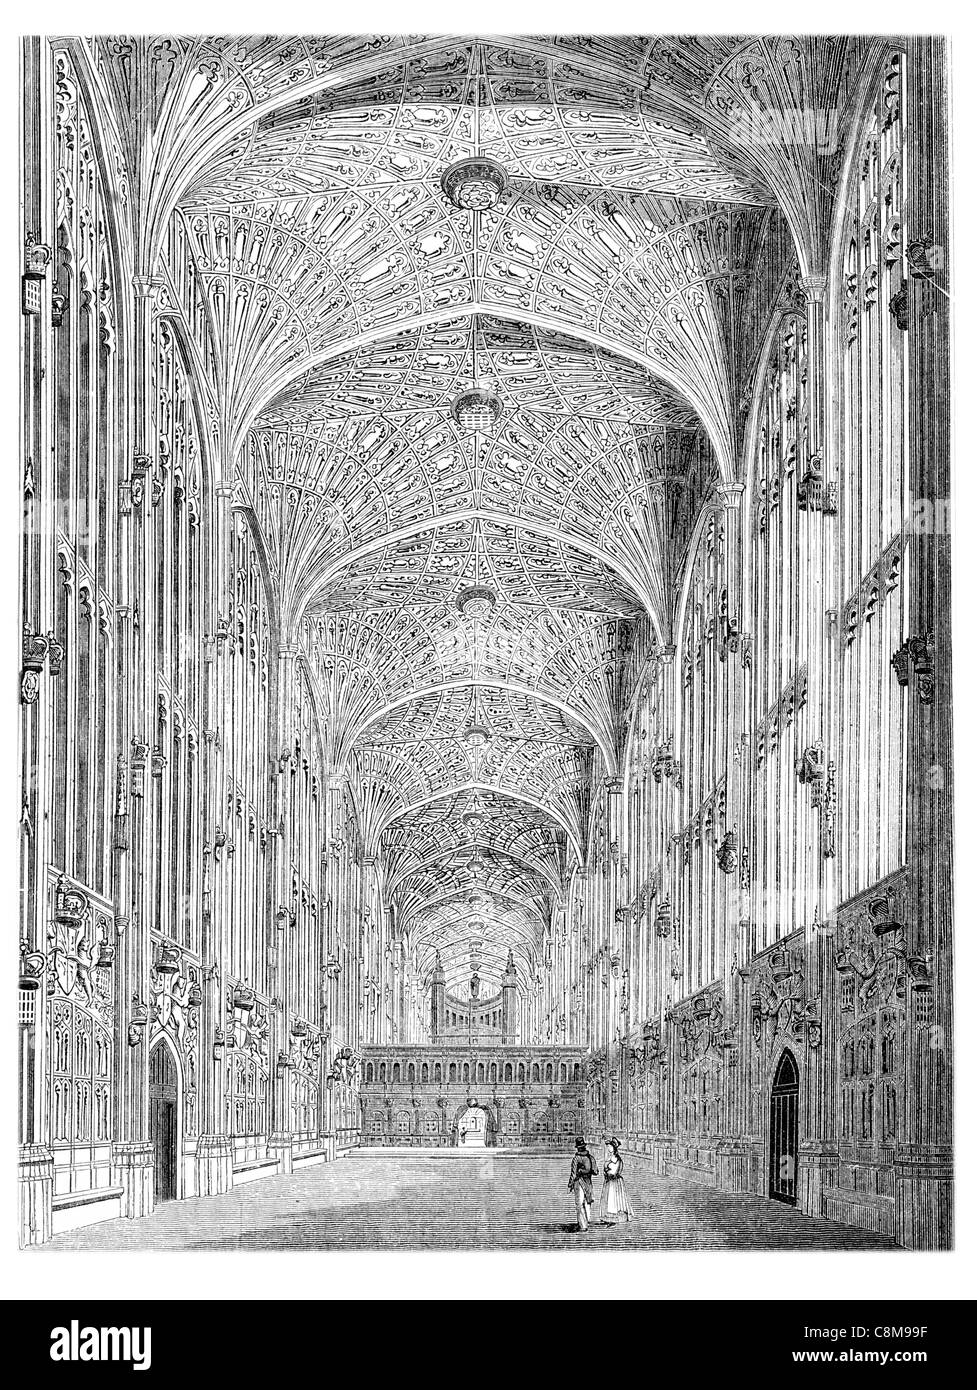 King's College Chapel University Cambridge Gothic nave chancel church fine medieval Hall Interior vaulted ceiling Stock Photo